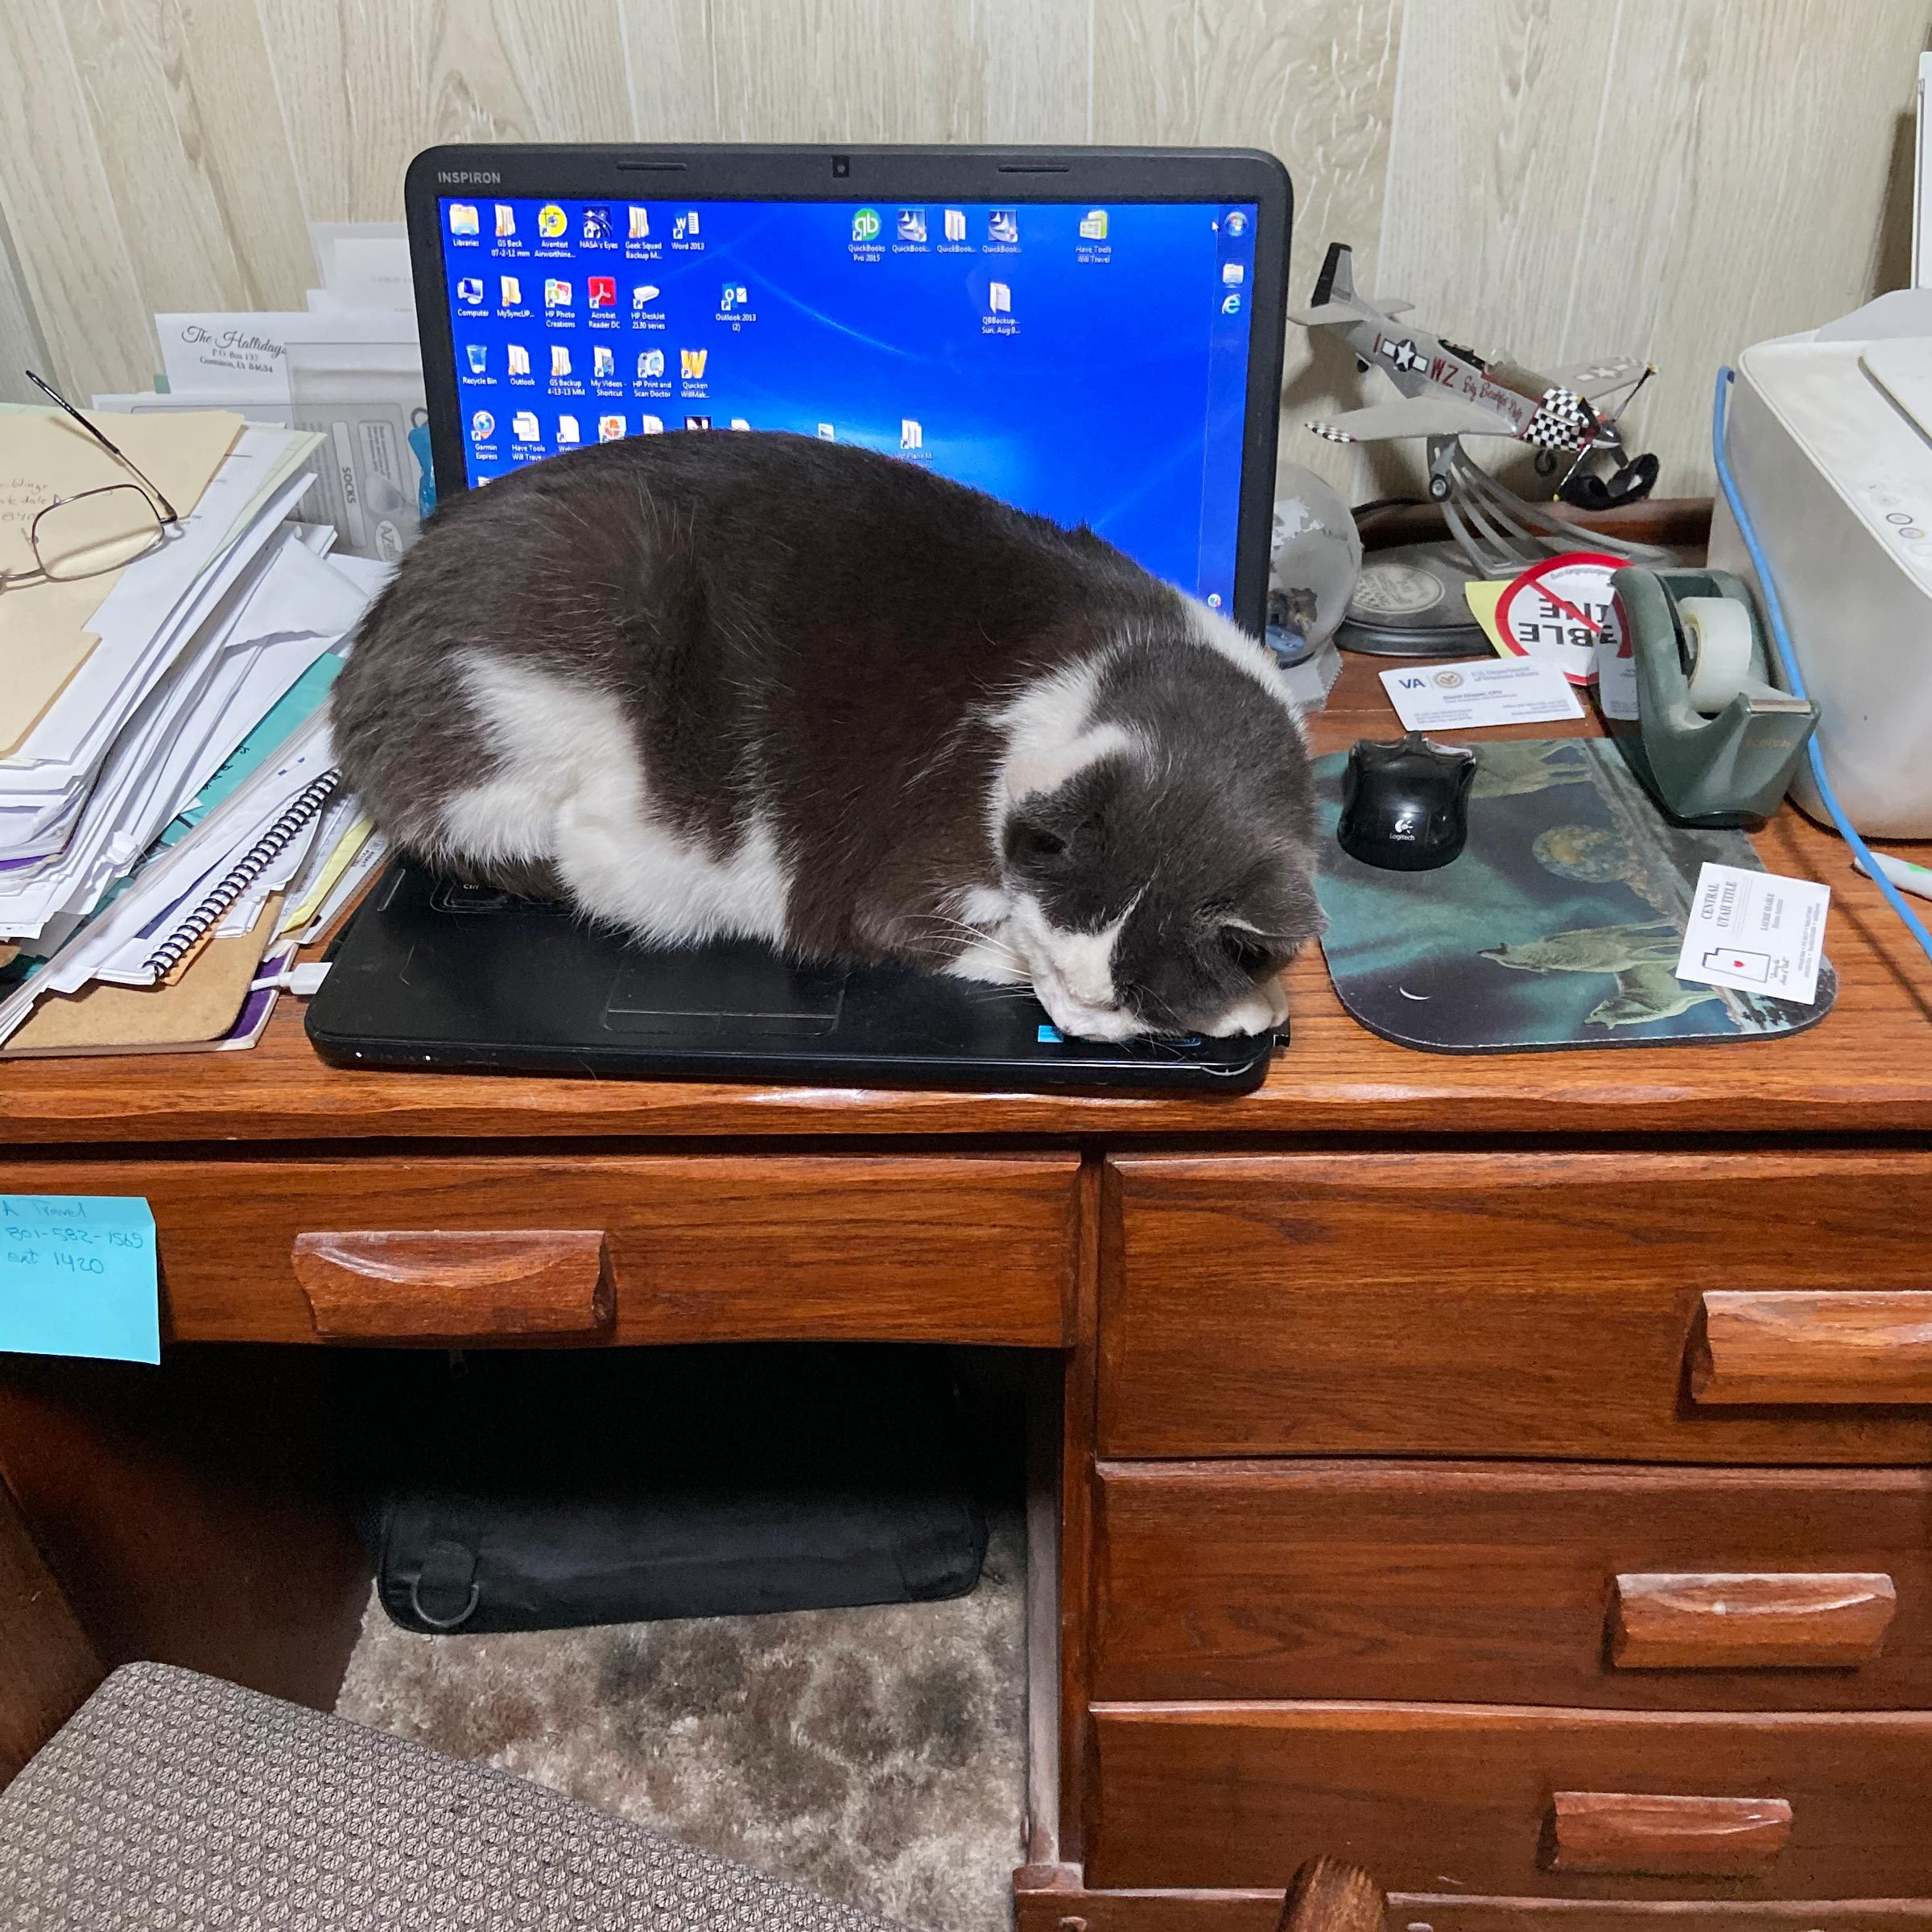 cat taking a nap on the keyboard of an open laptop